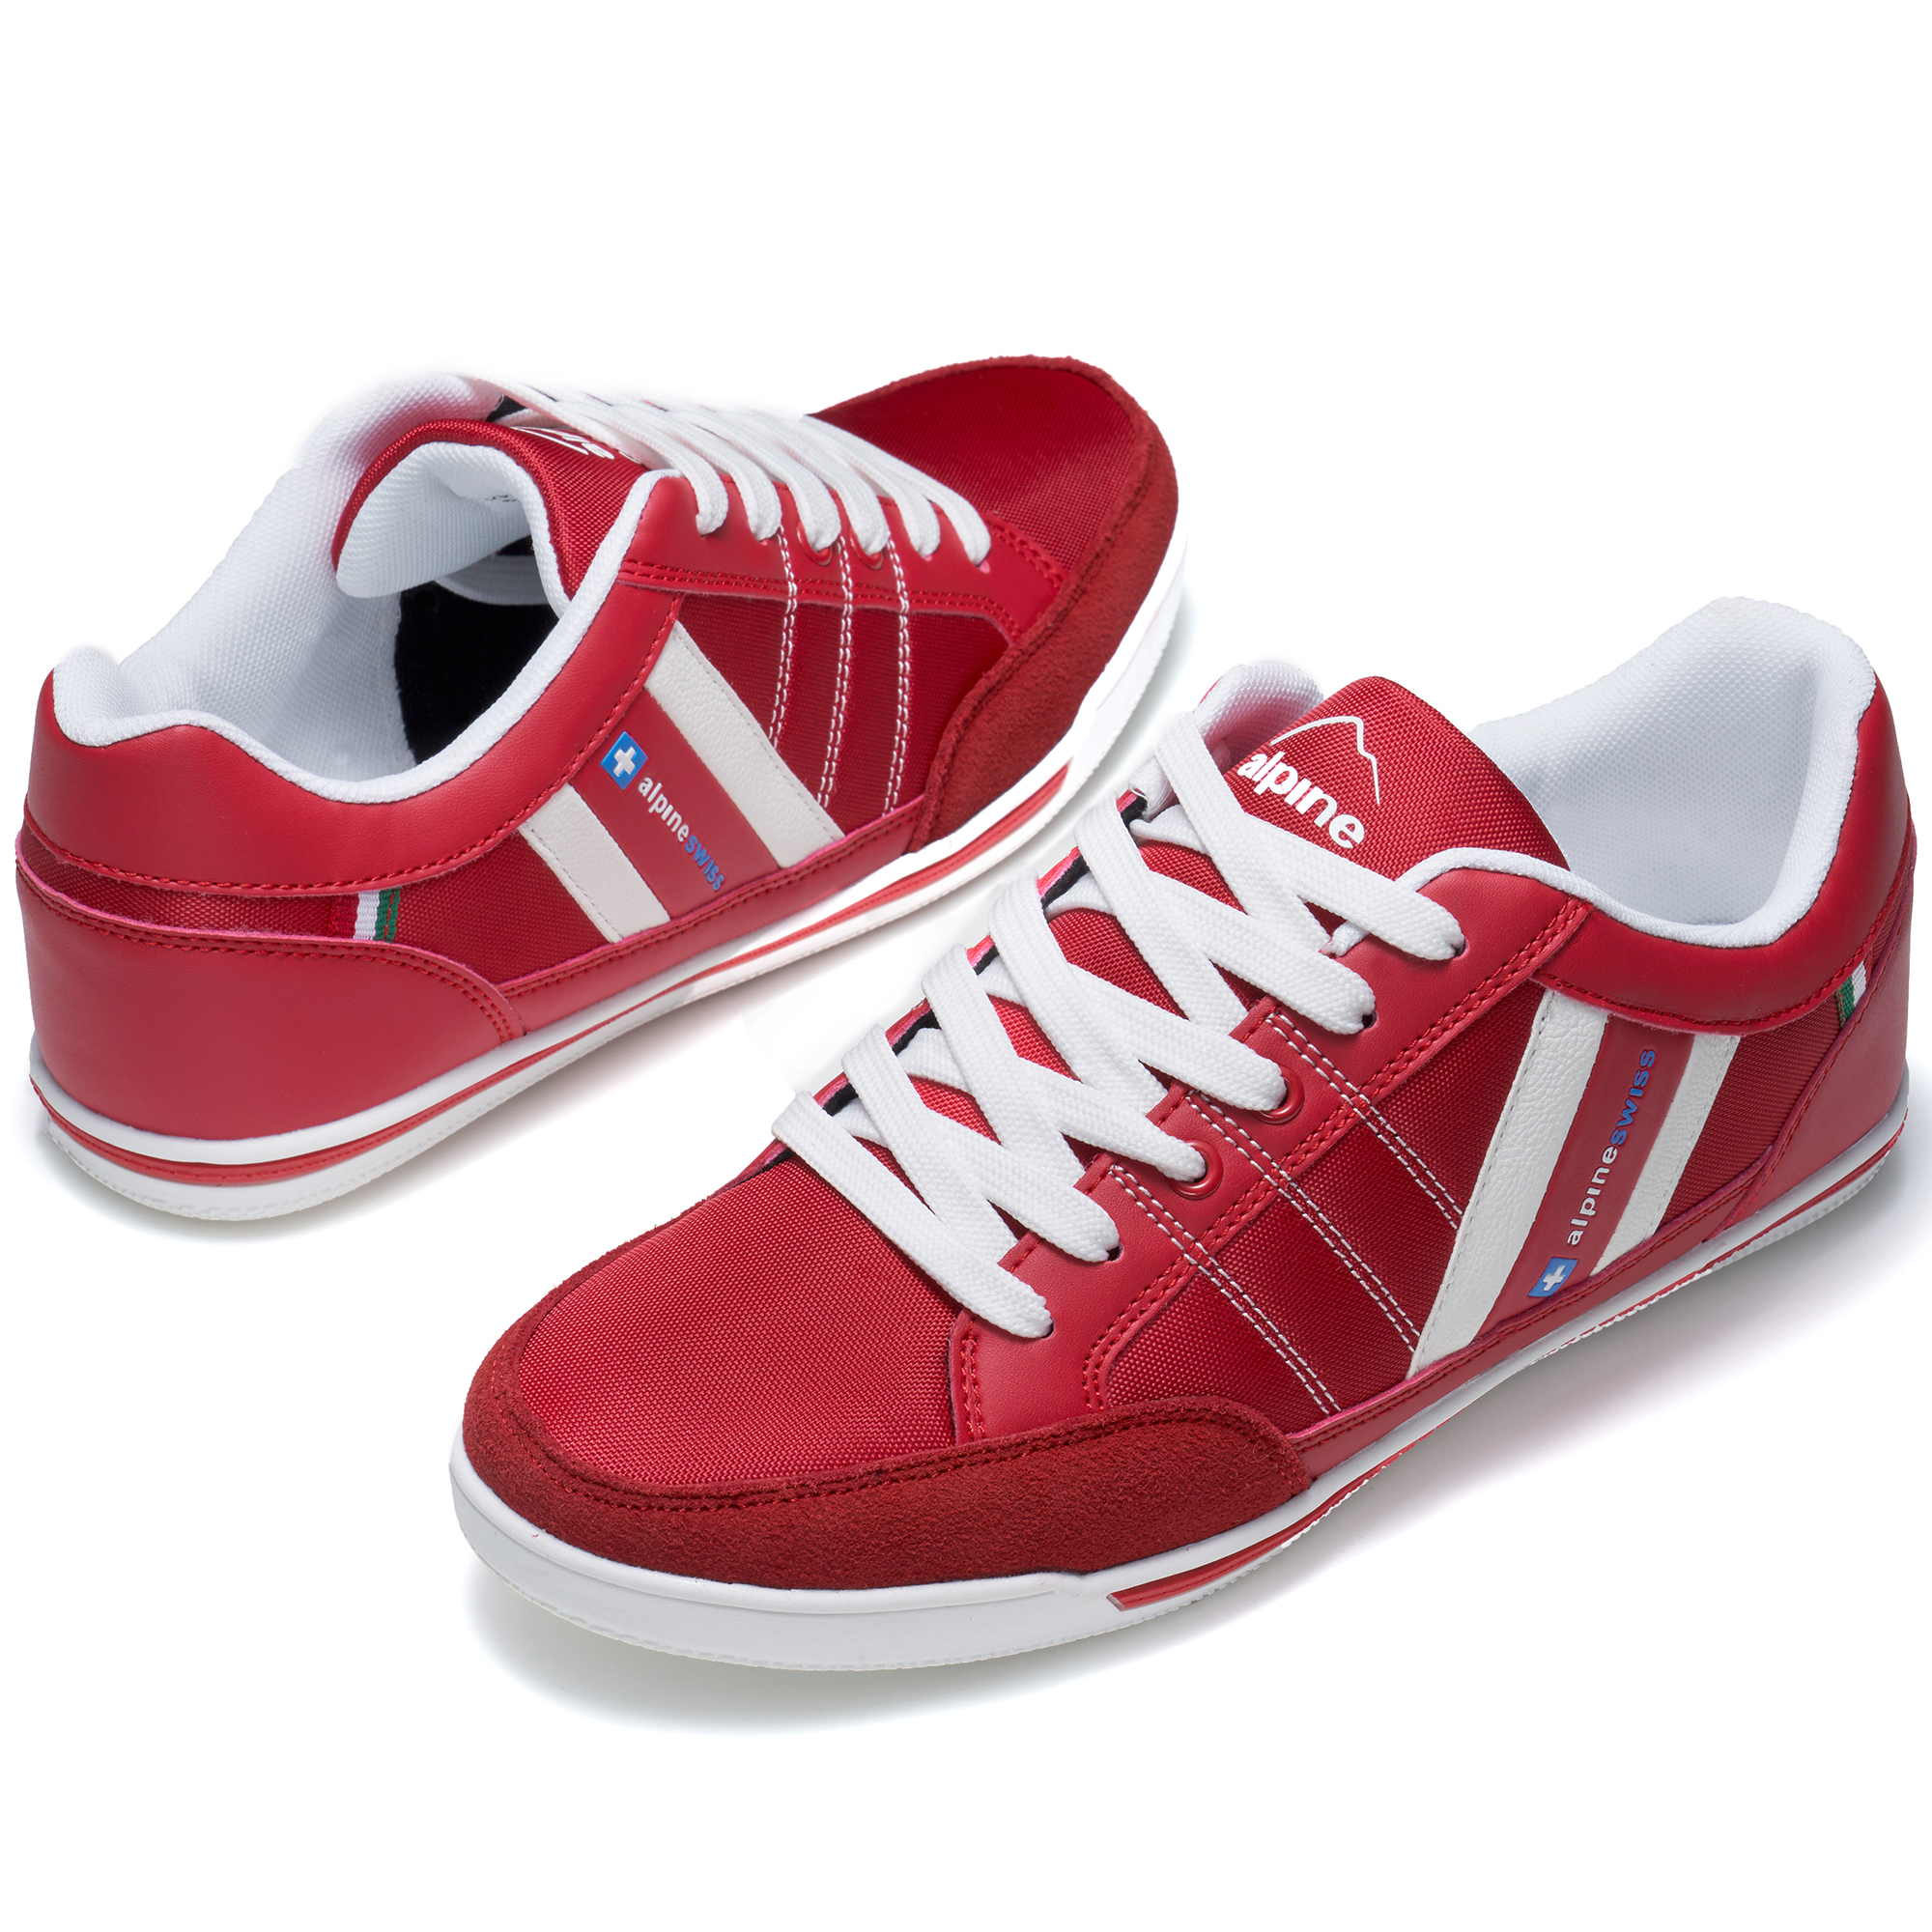 Alpine-Swiss-Stefan-Mens-Retro-Fashion-Sneakers-Tennis-Shoes-Casual-Athletic-New thumbnail 36